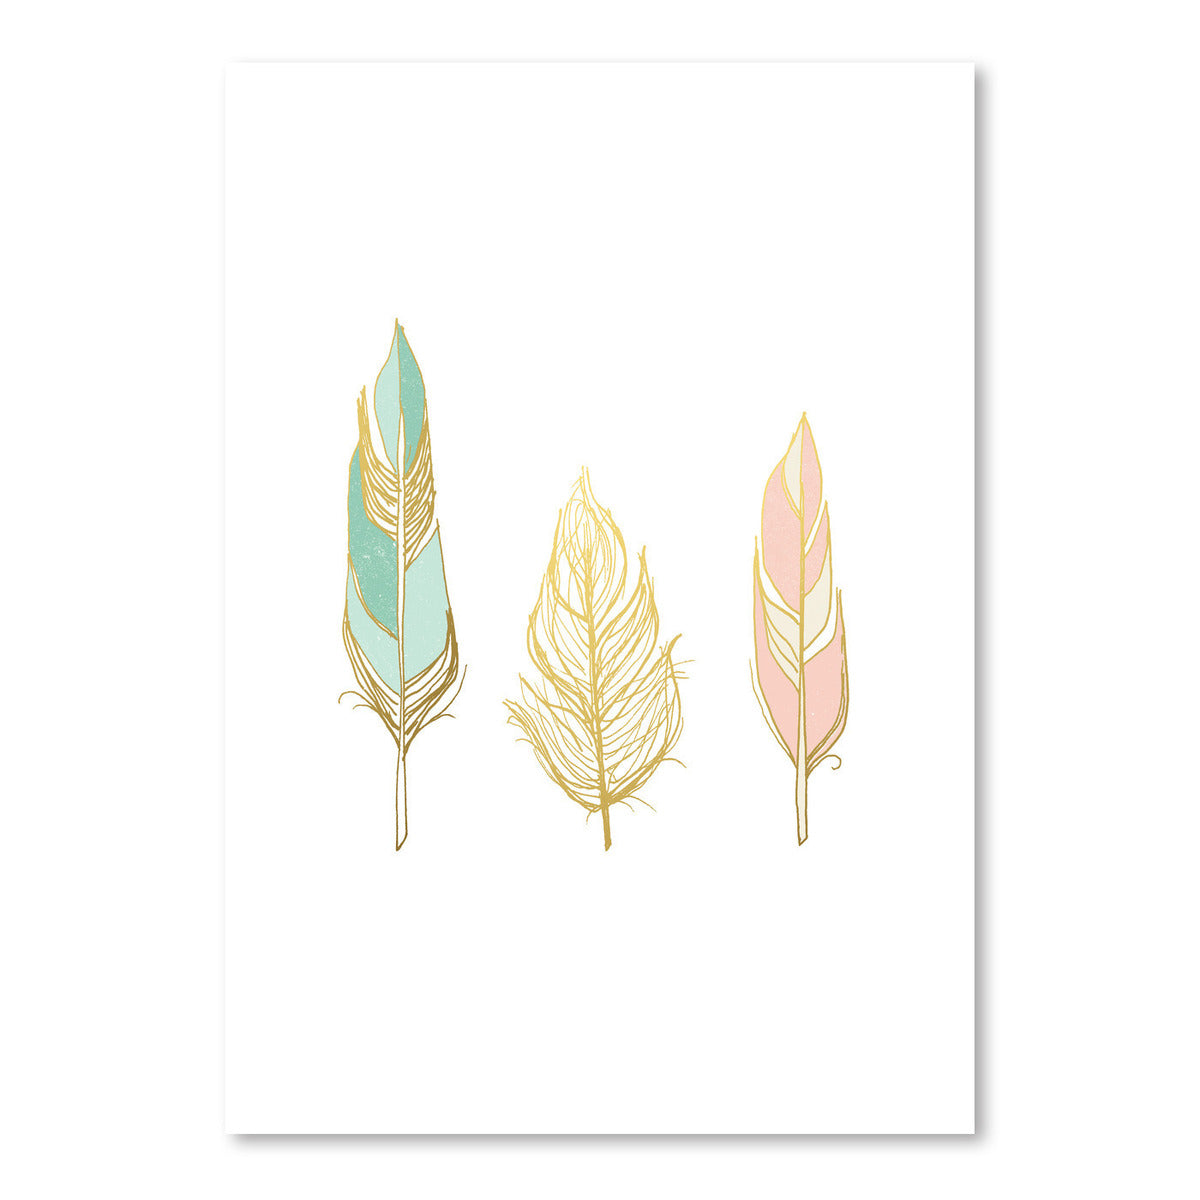 Three Feathers In Gold by Wall + Wonder - Art Print - Americanflat